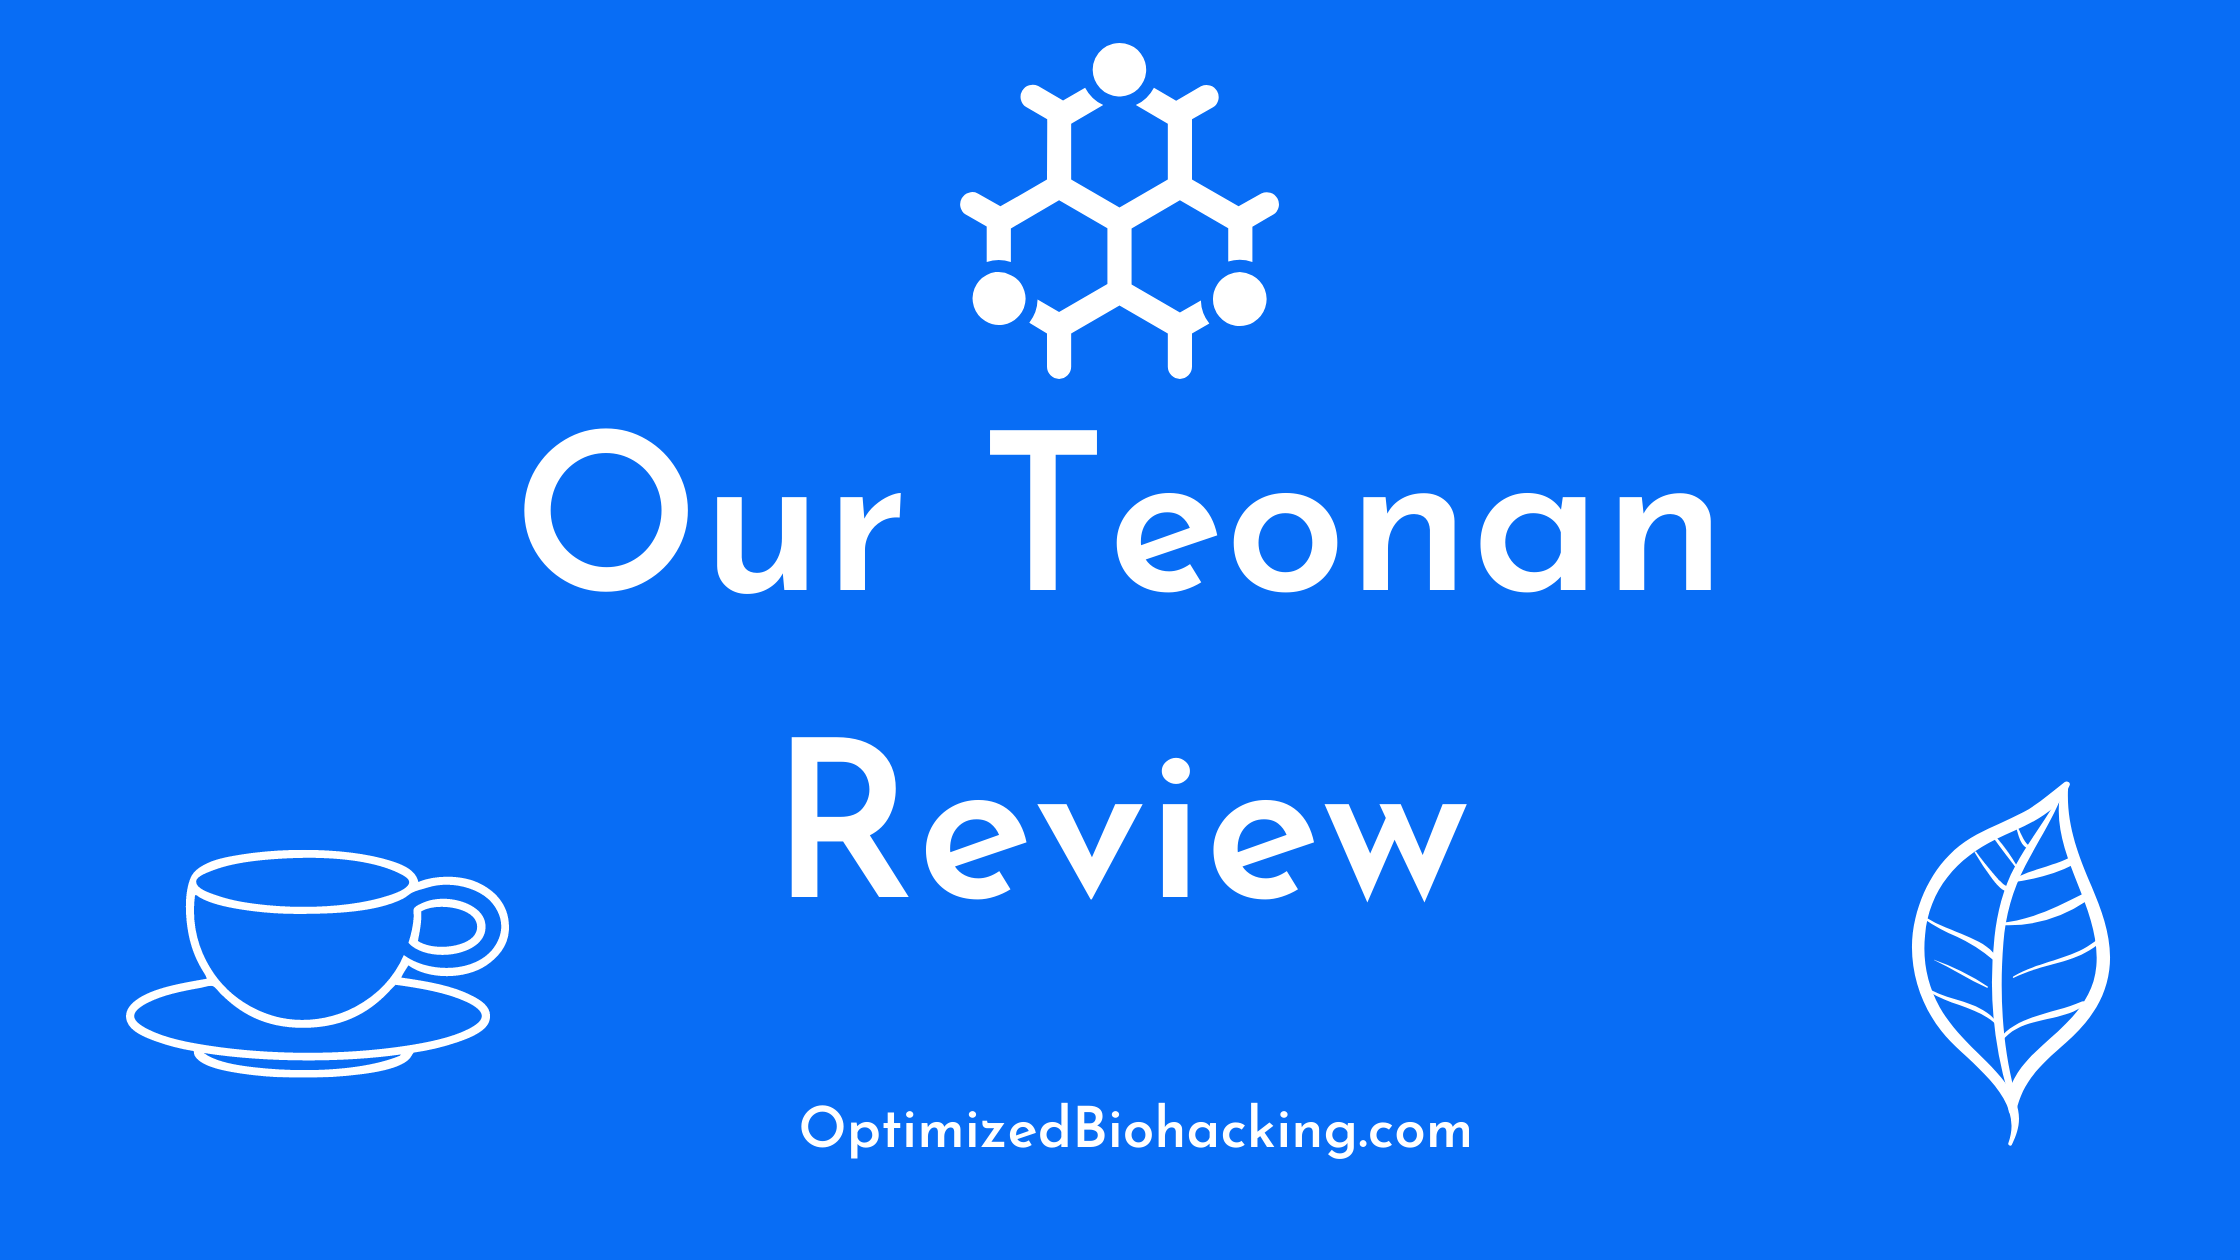 Our Teonan Review